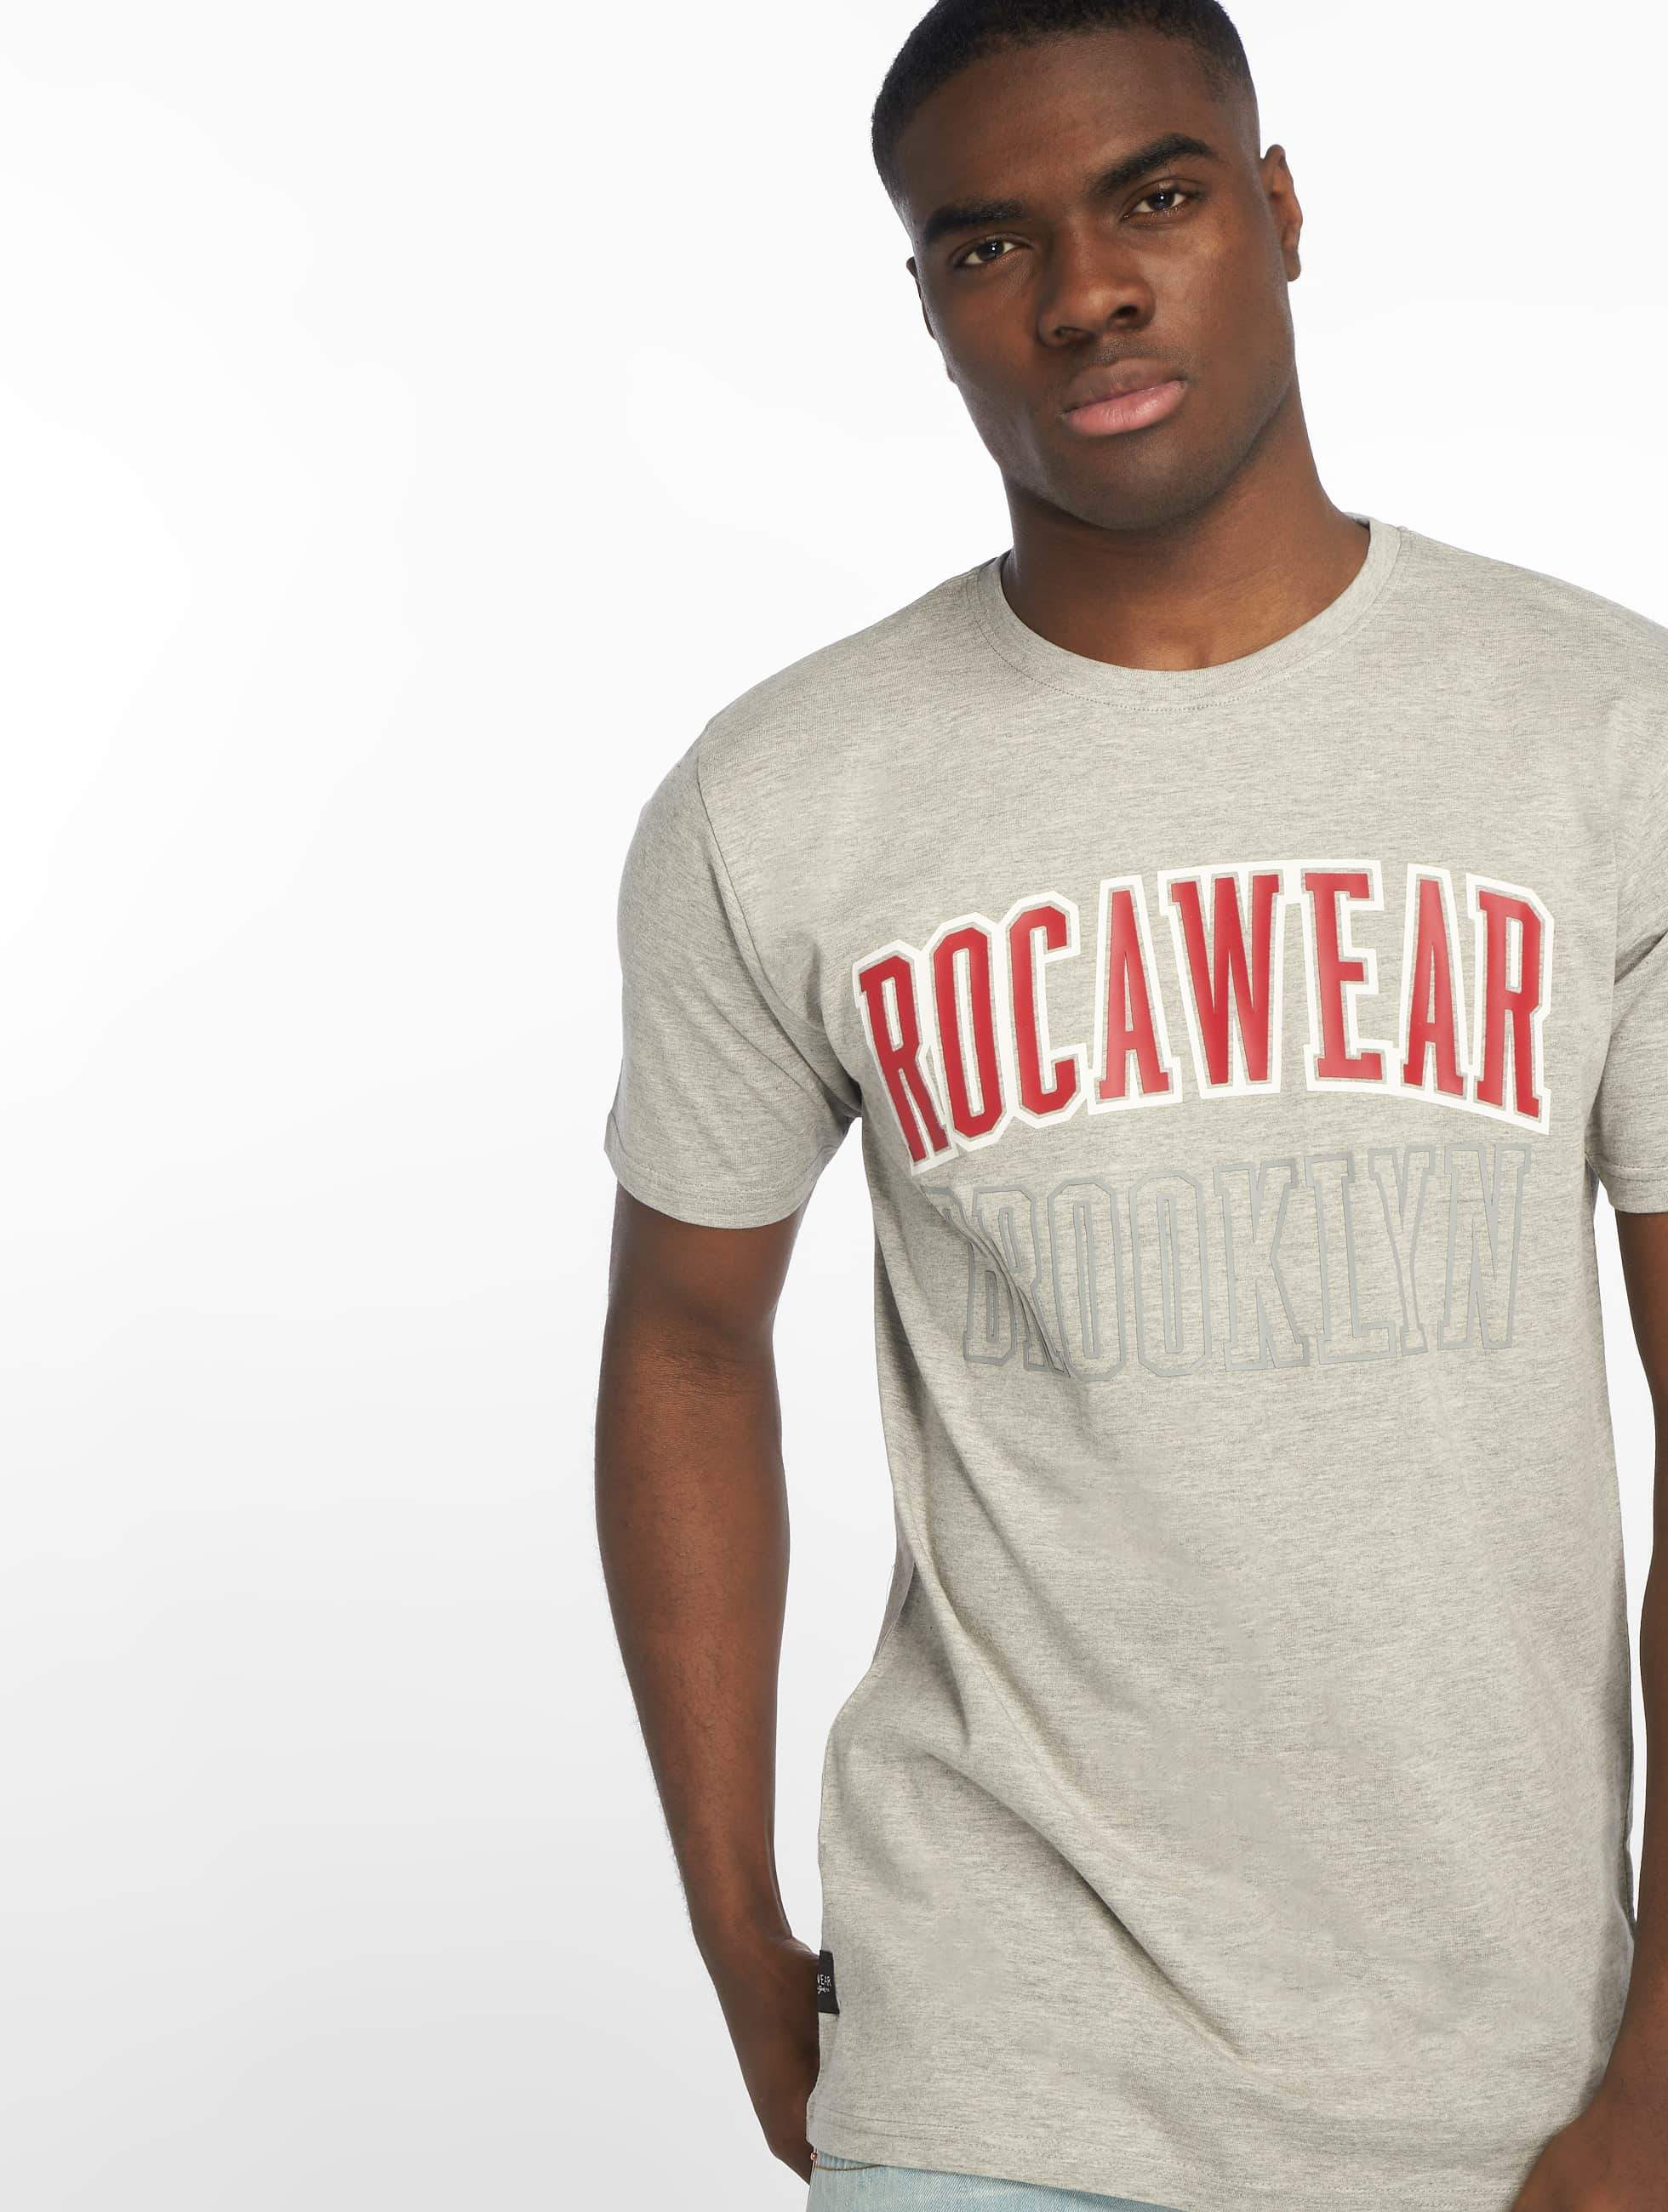 Rocawear / T-Shirt Brooklyn in grey XL